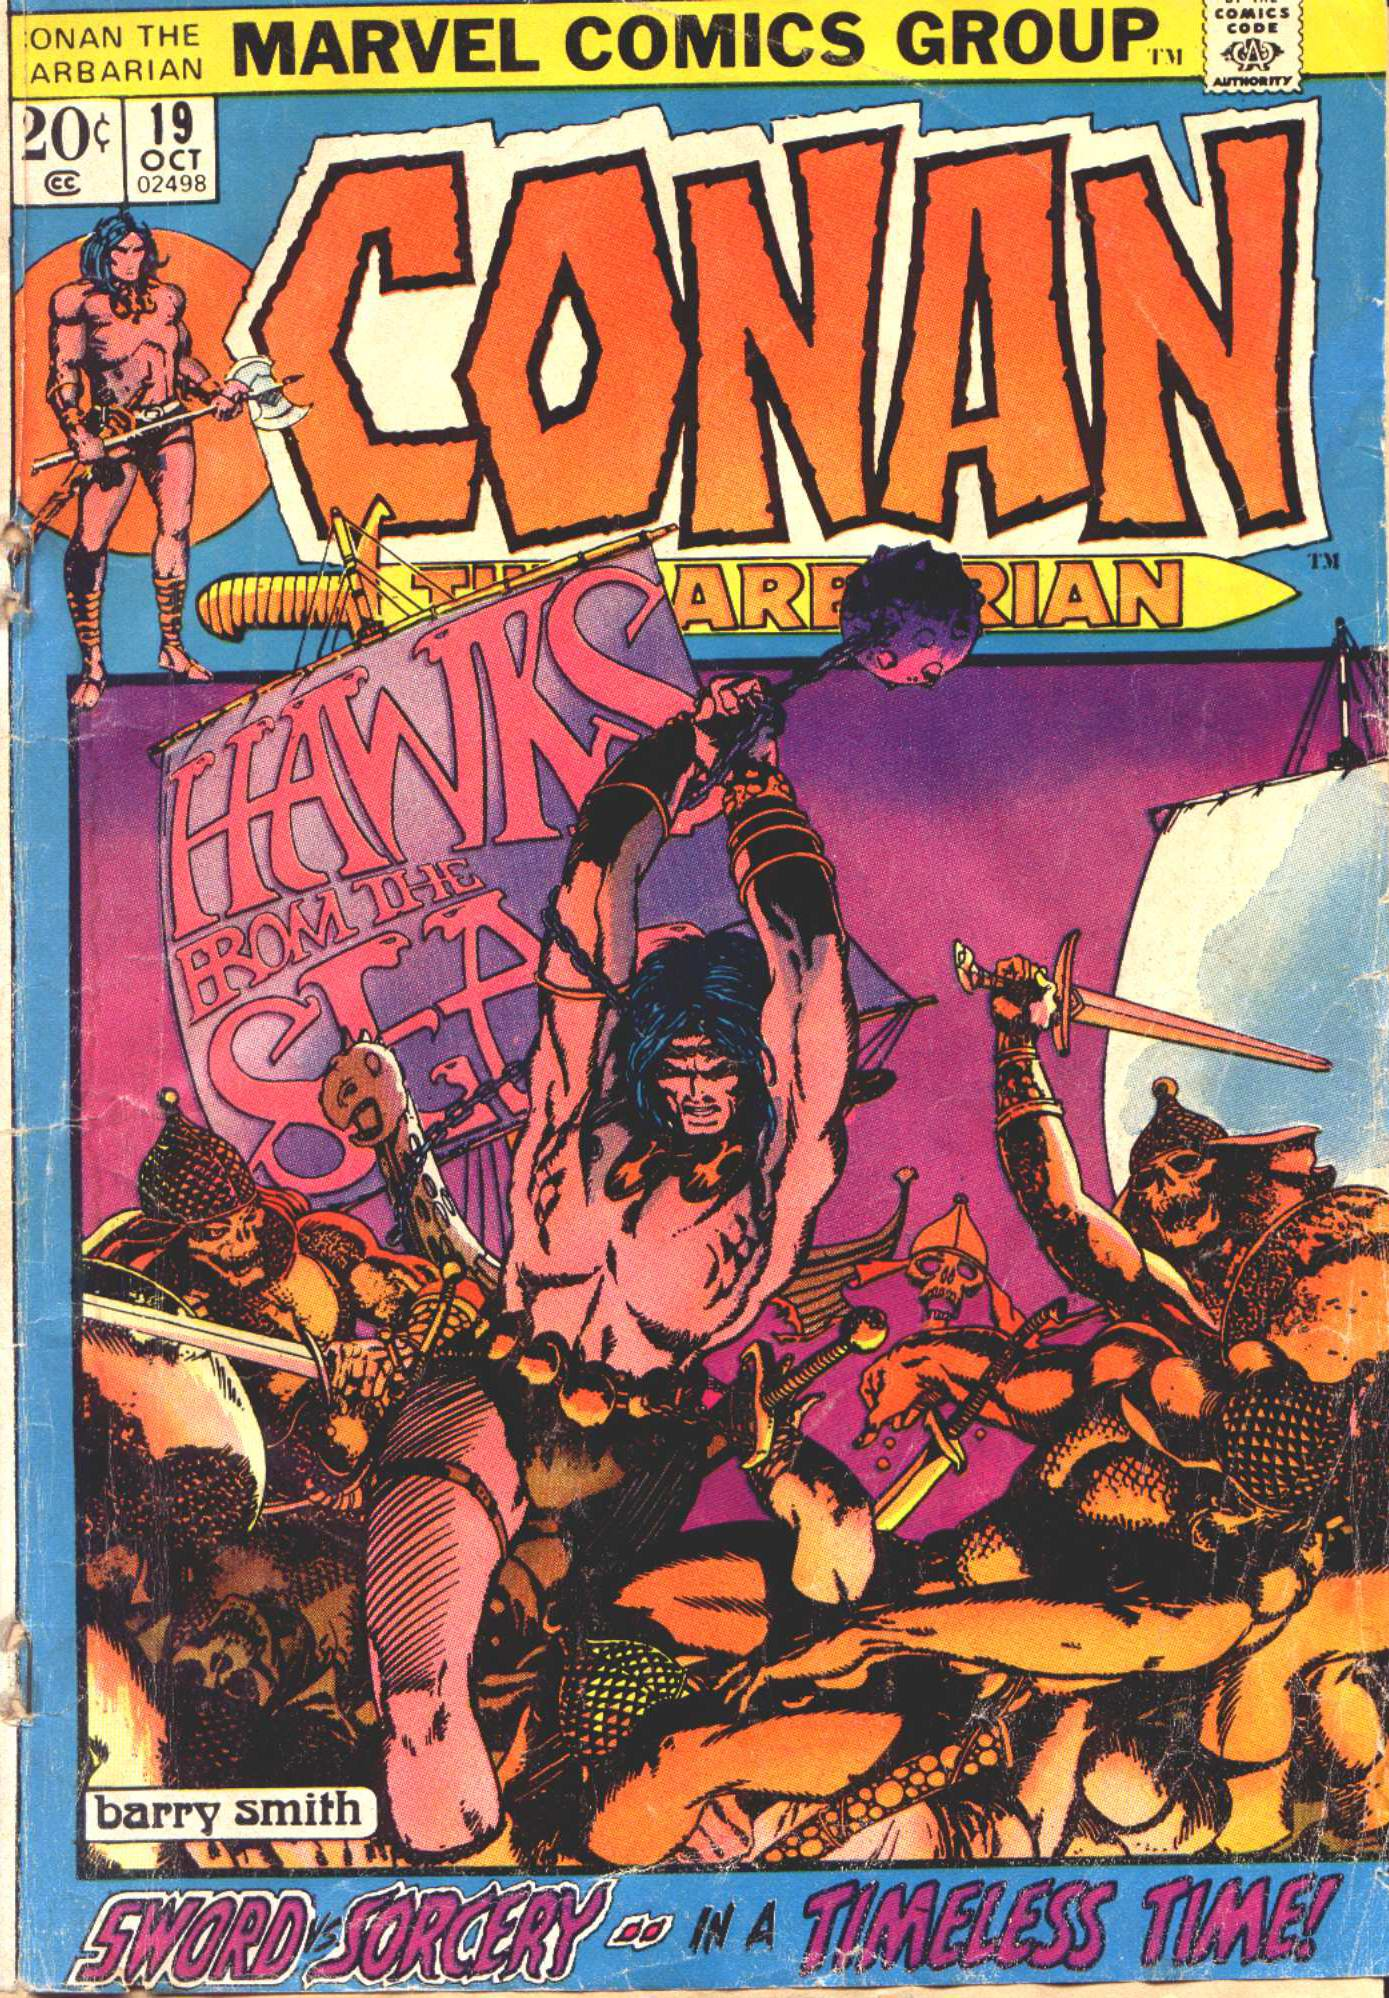 Conan the Barbarian (1970) 19 Page 1